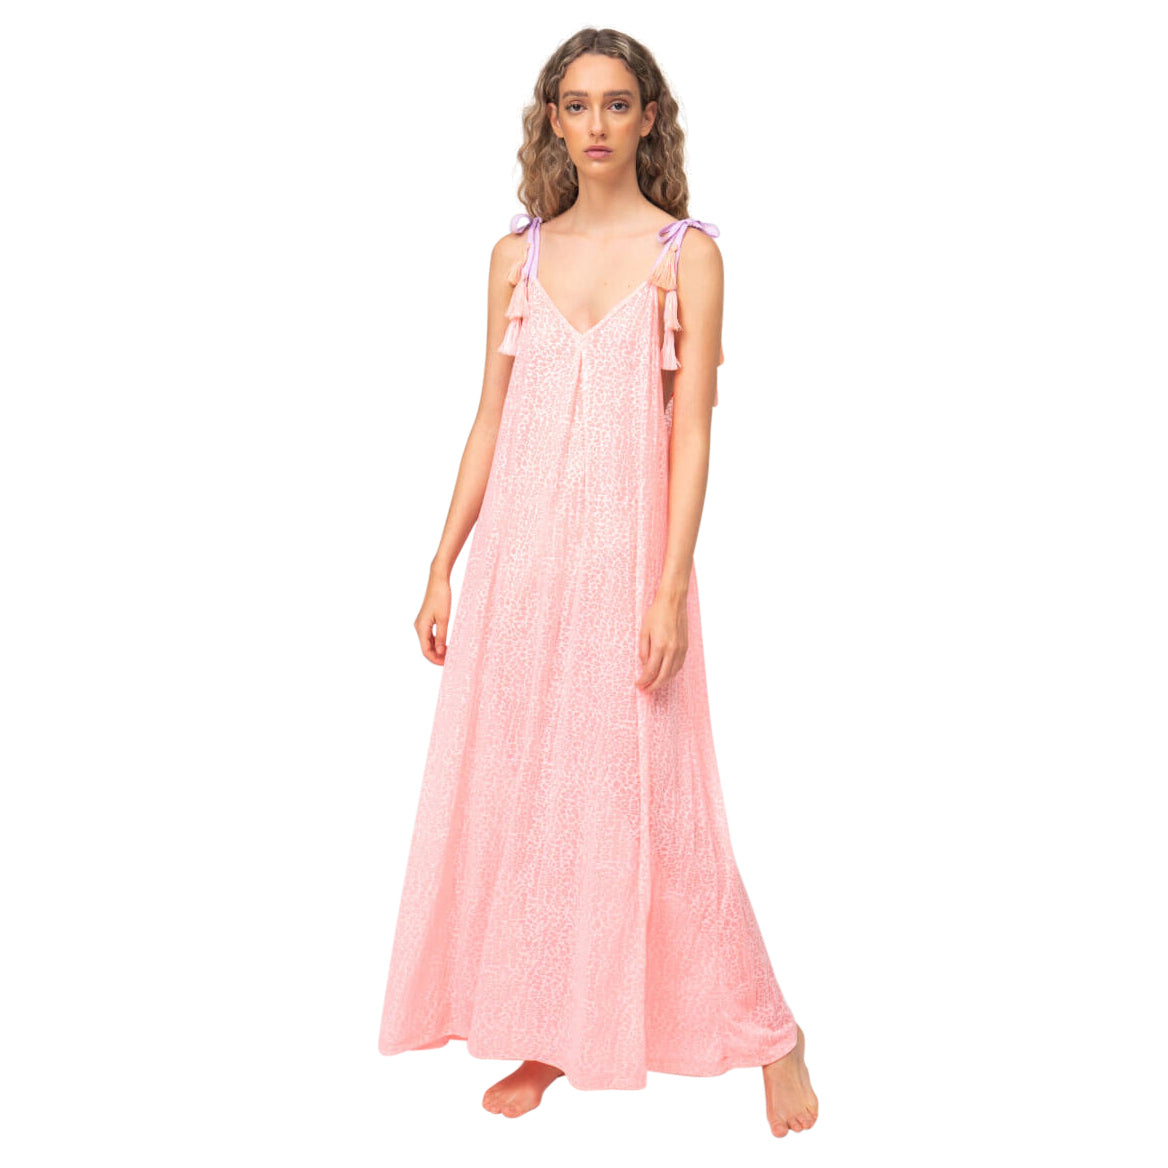 Tassel Tie Maxi Dress